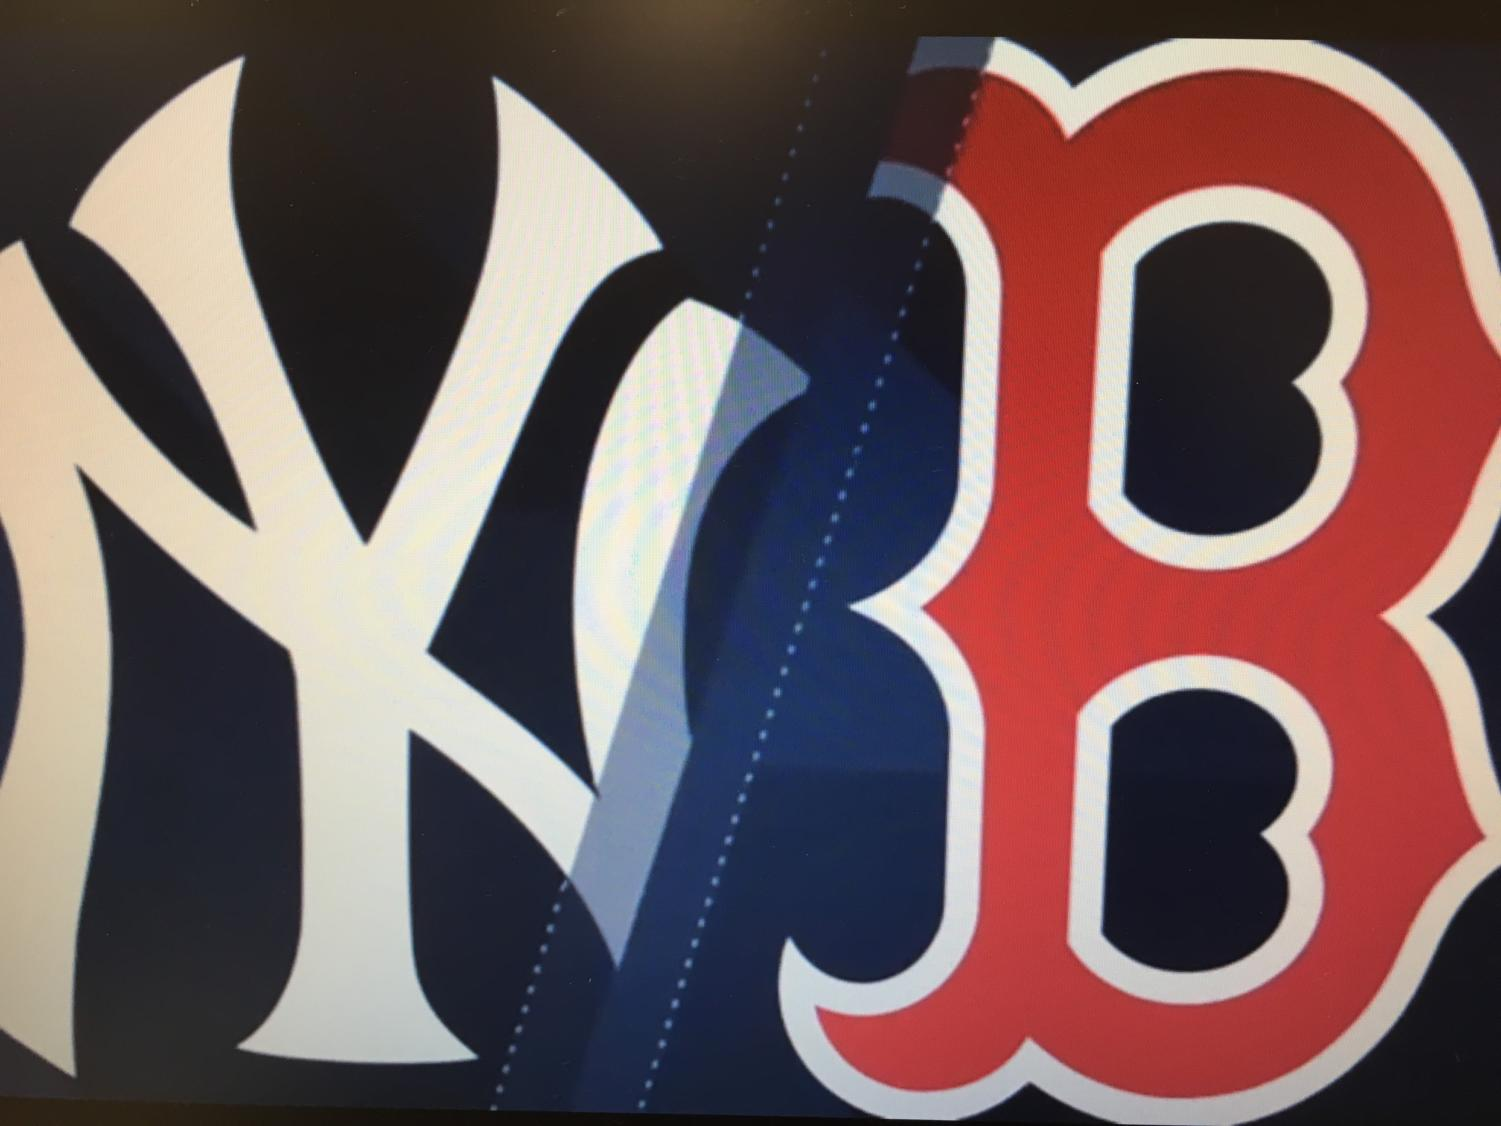 The Red Sox and Yankees faced off for the first time in the 2018 season.